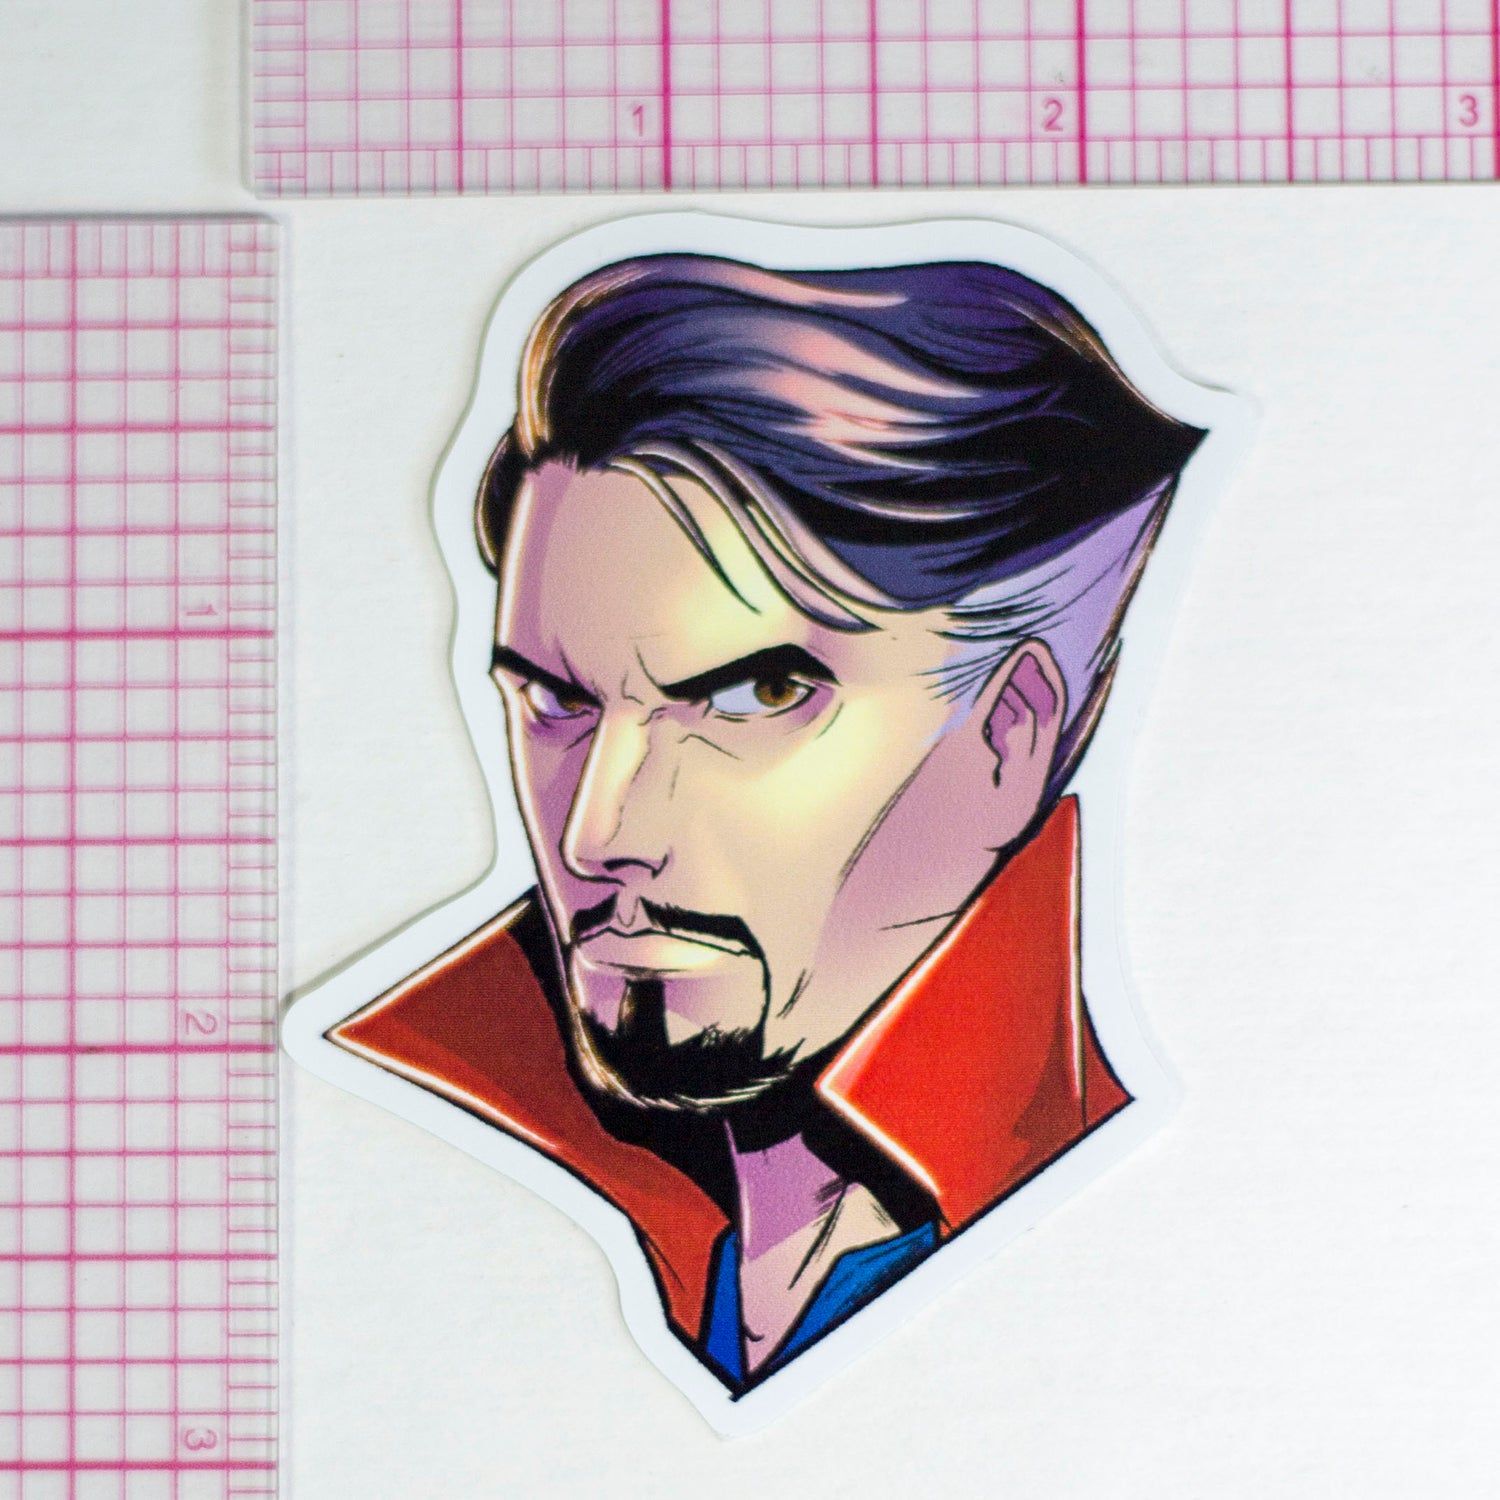 Image of Dr. Strange